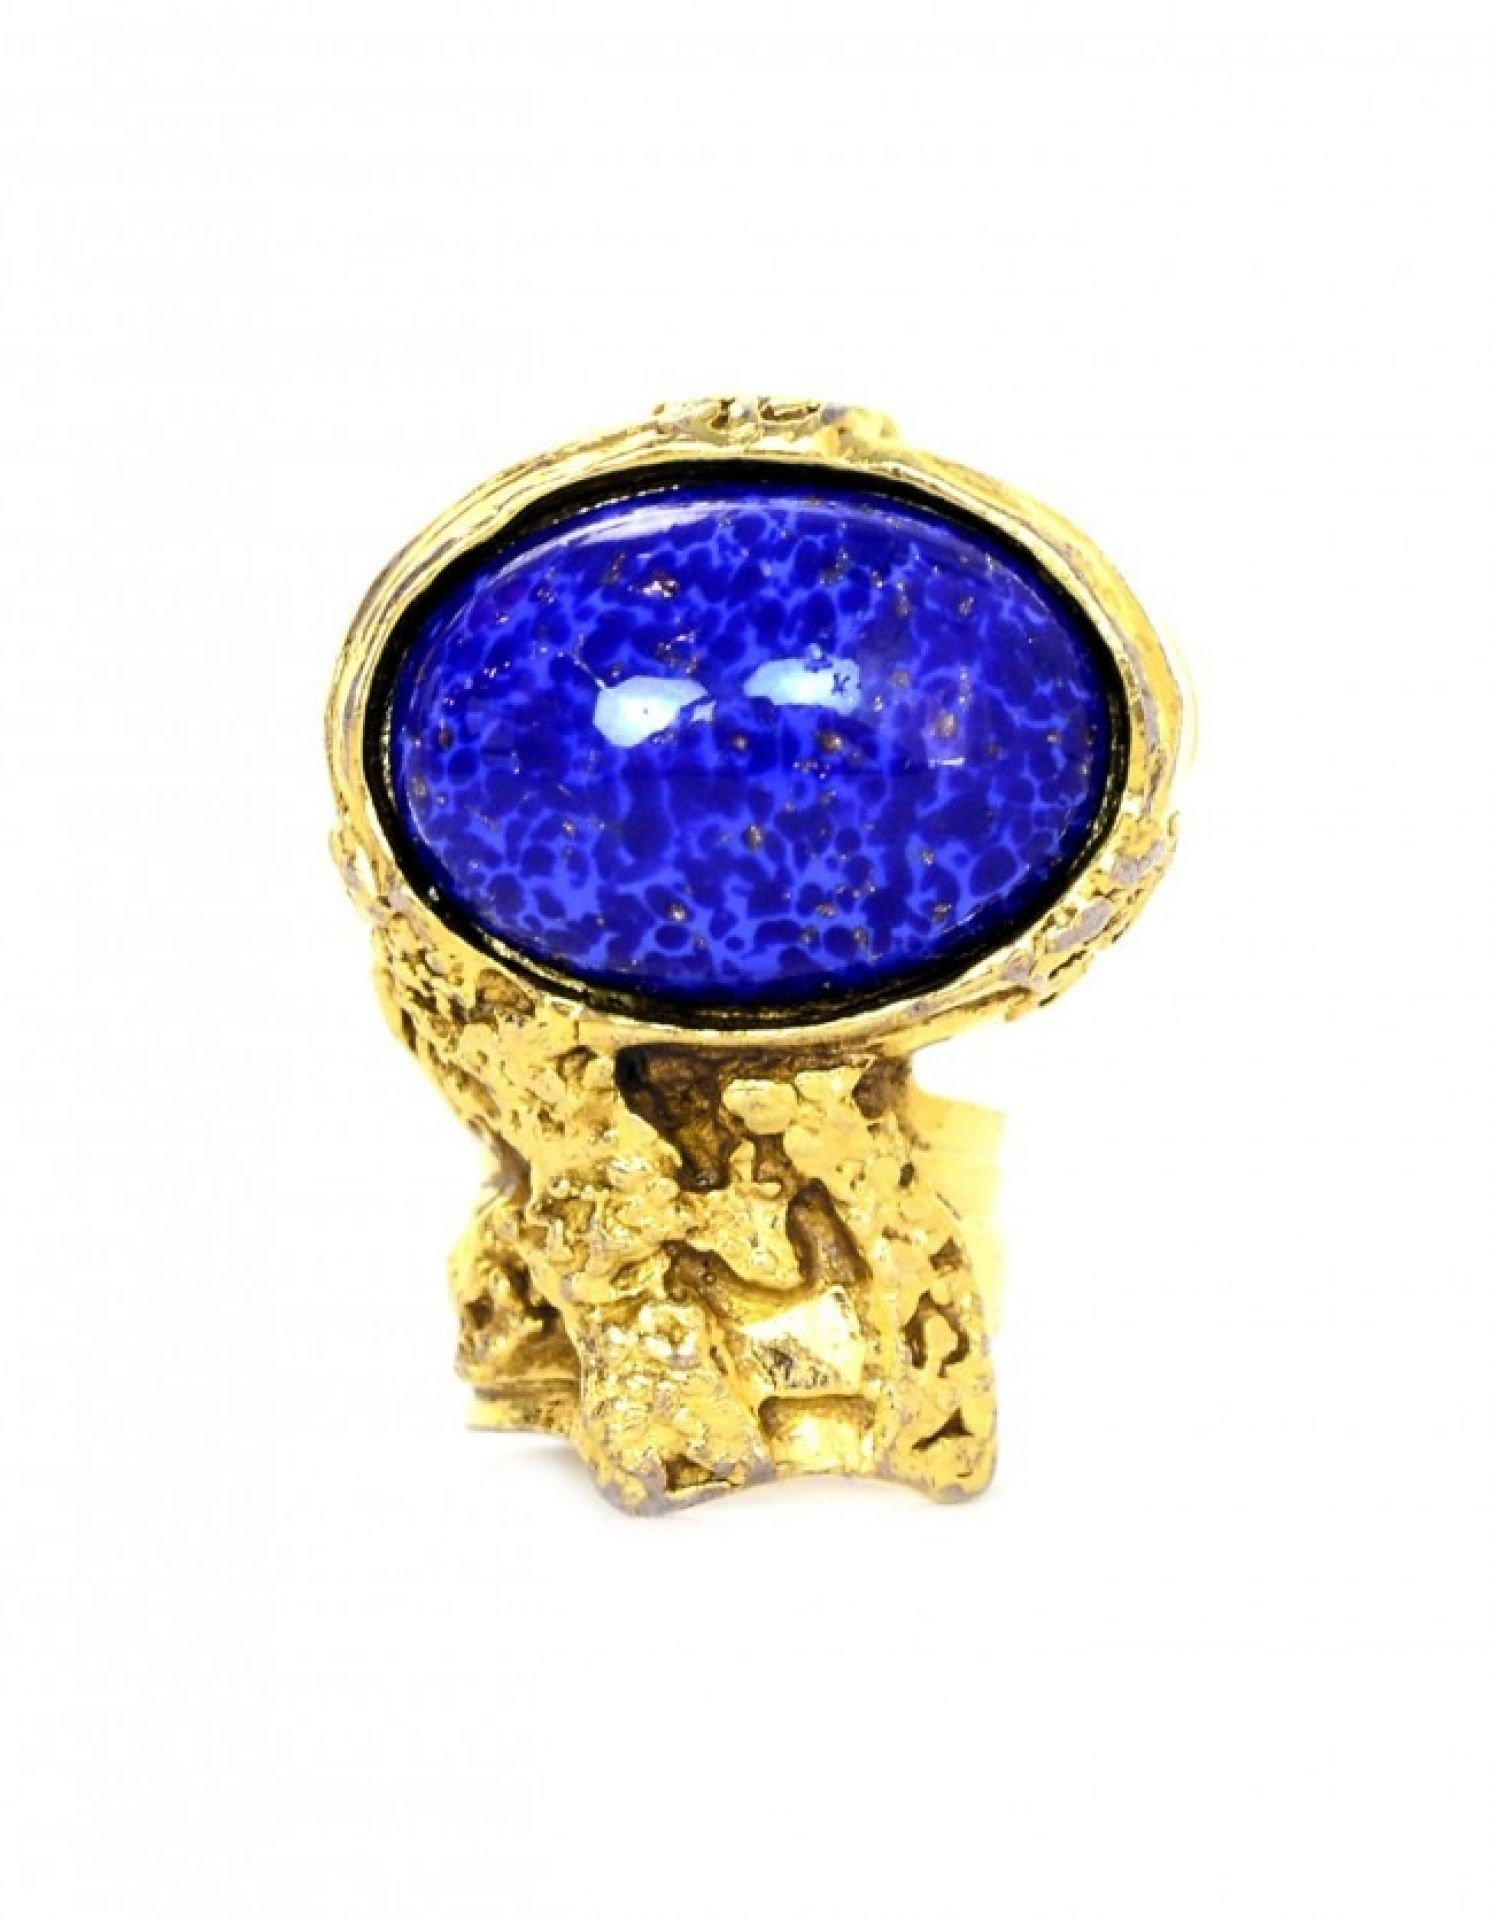 YSL Gold/Blue Arty Cocktail Ring sz 5